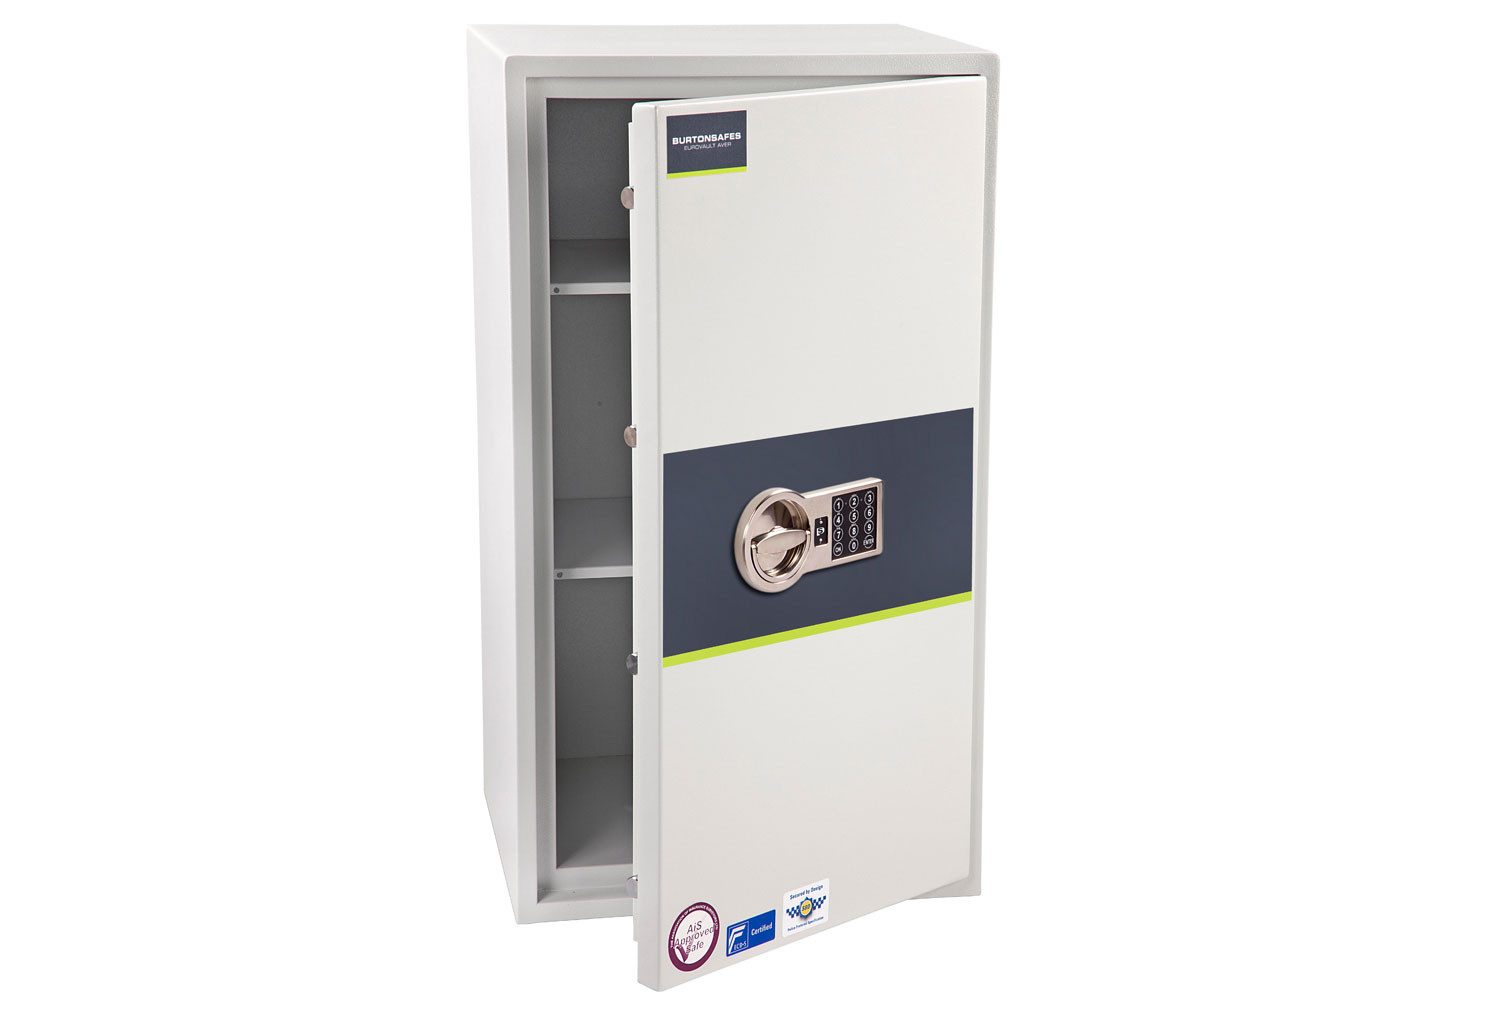 Burton Eurovault Aver S2 Size 5 Safe With Electric Lock (77ltrs)